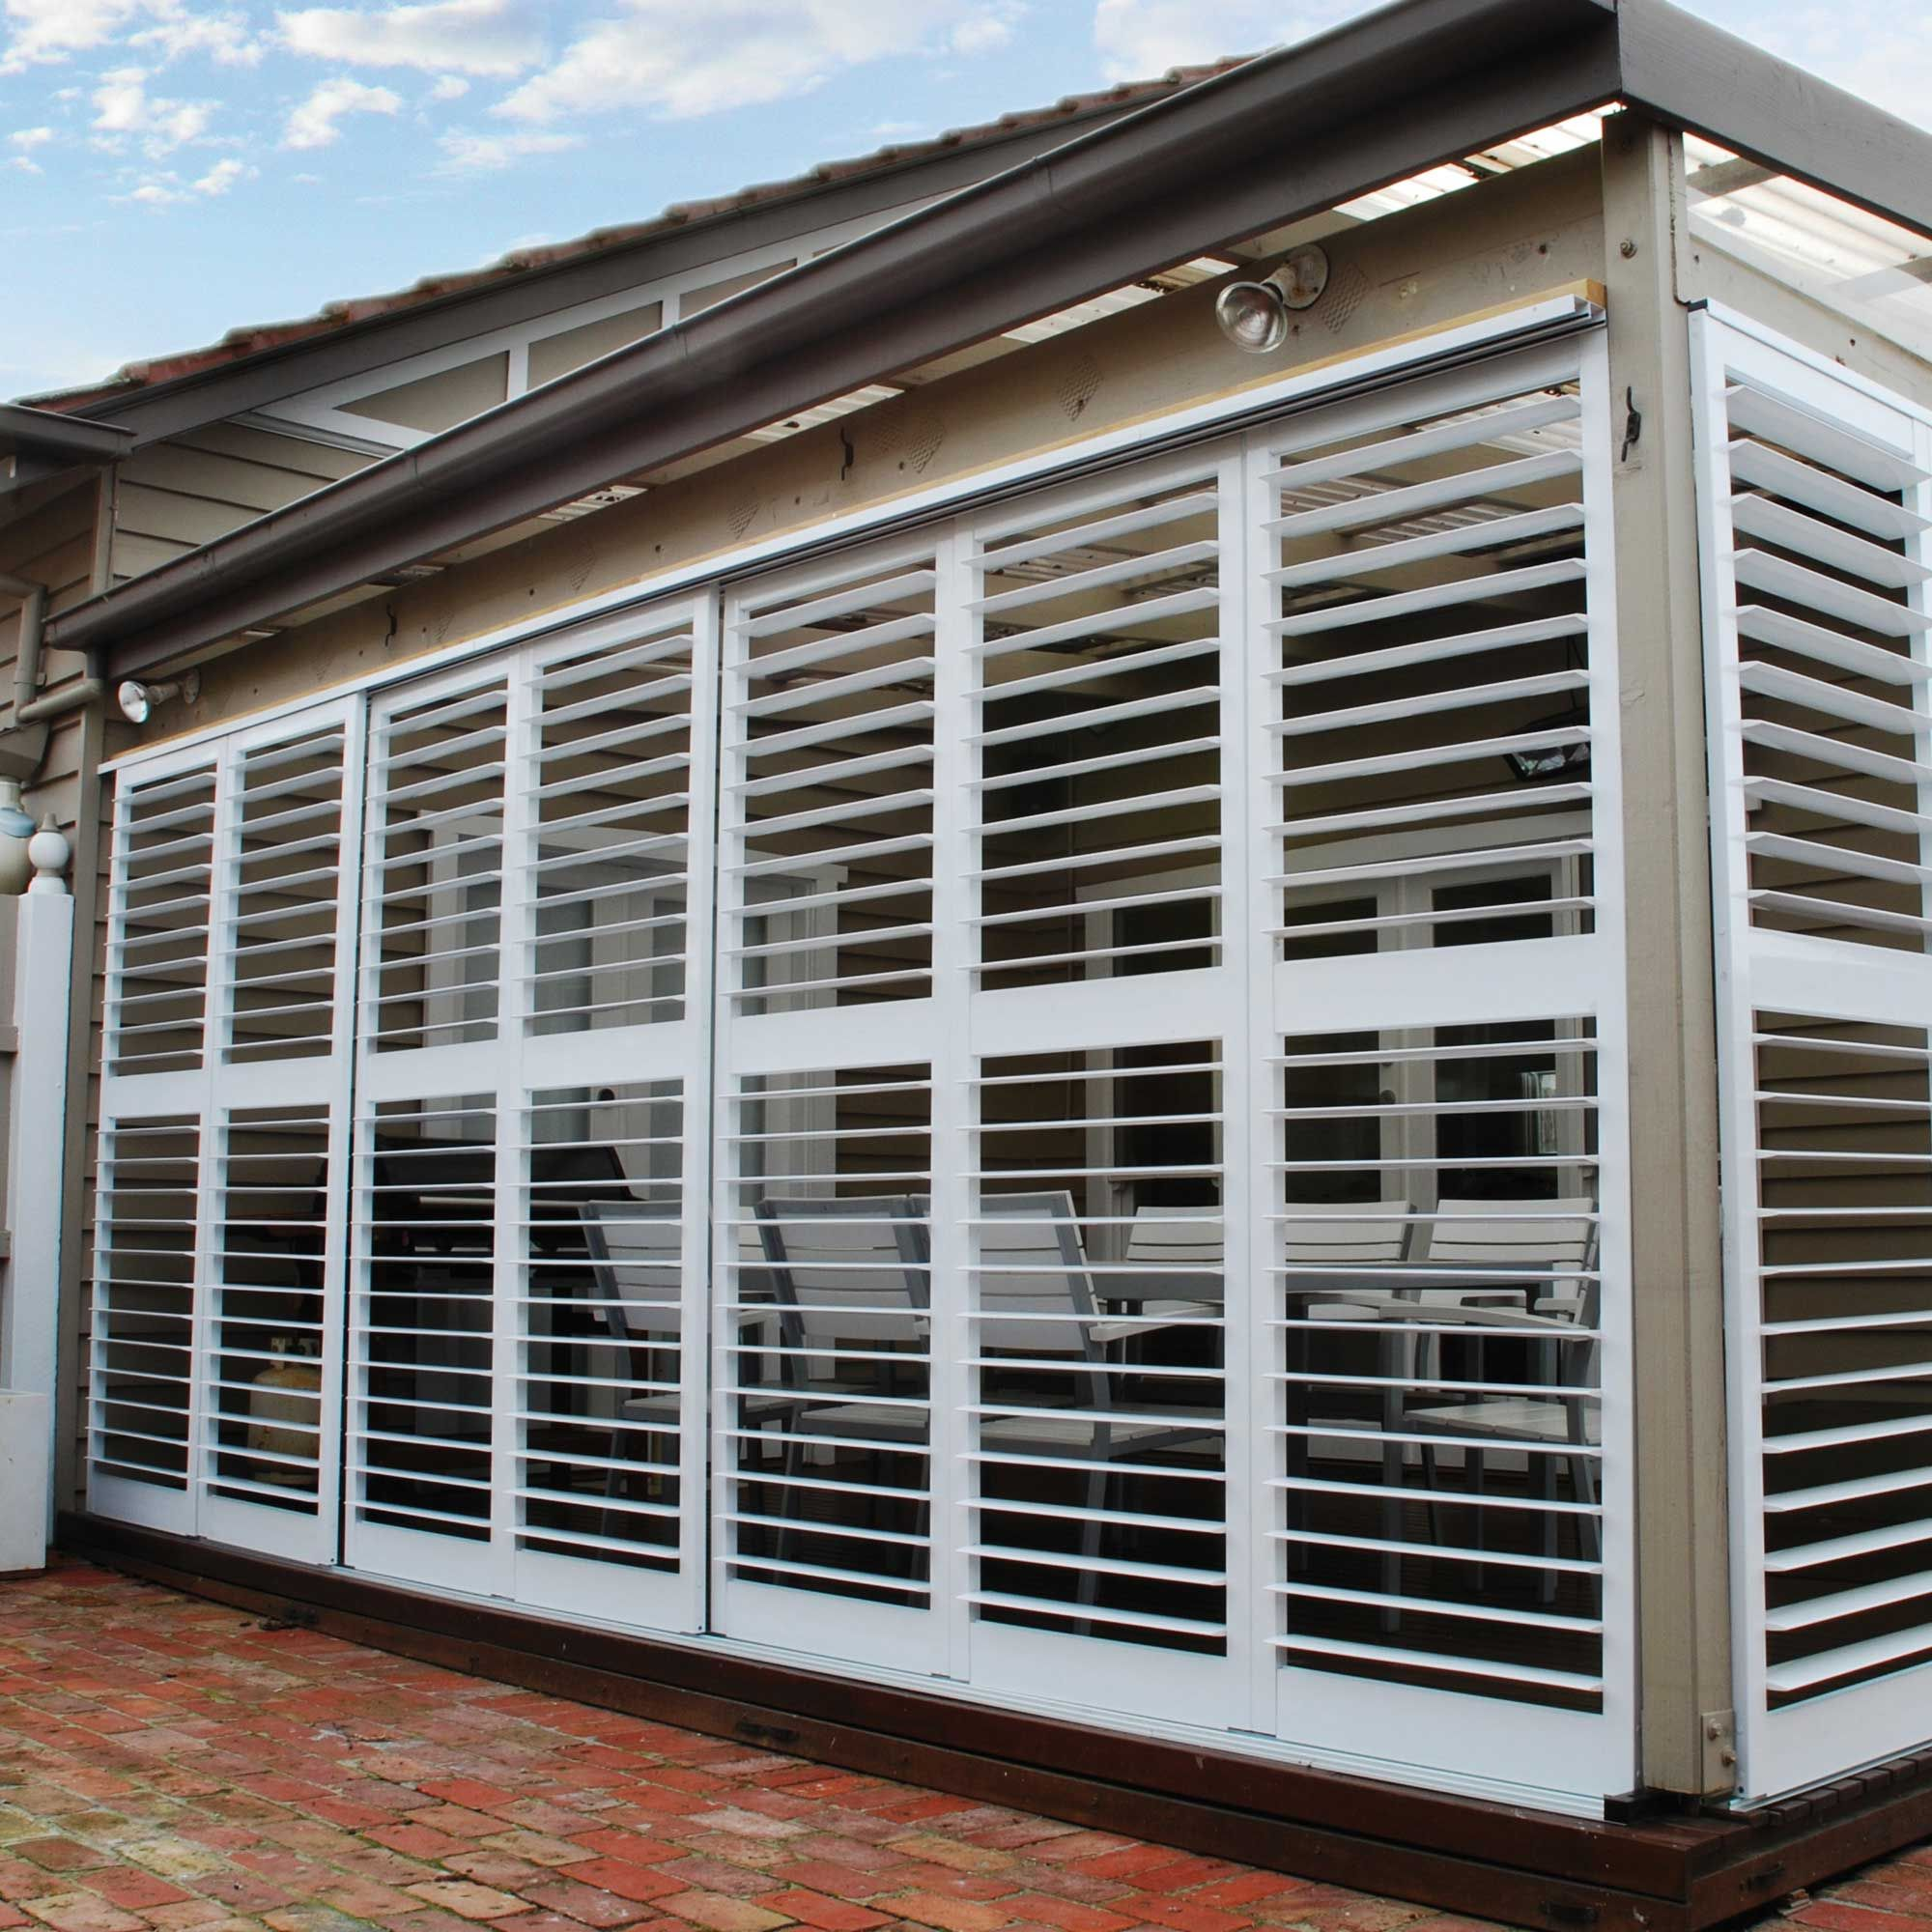 Bunnings Eco Deck Polar Shutters Bunnings Беседки Shutters Outdoor